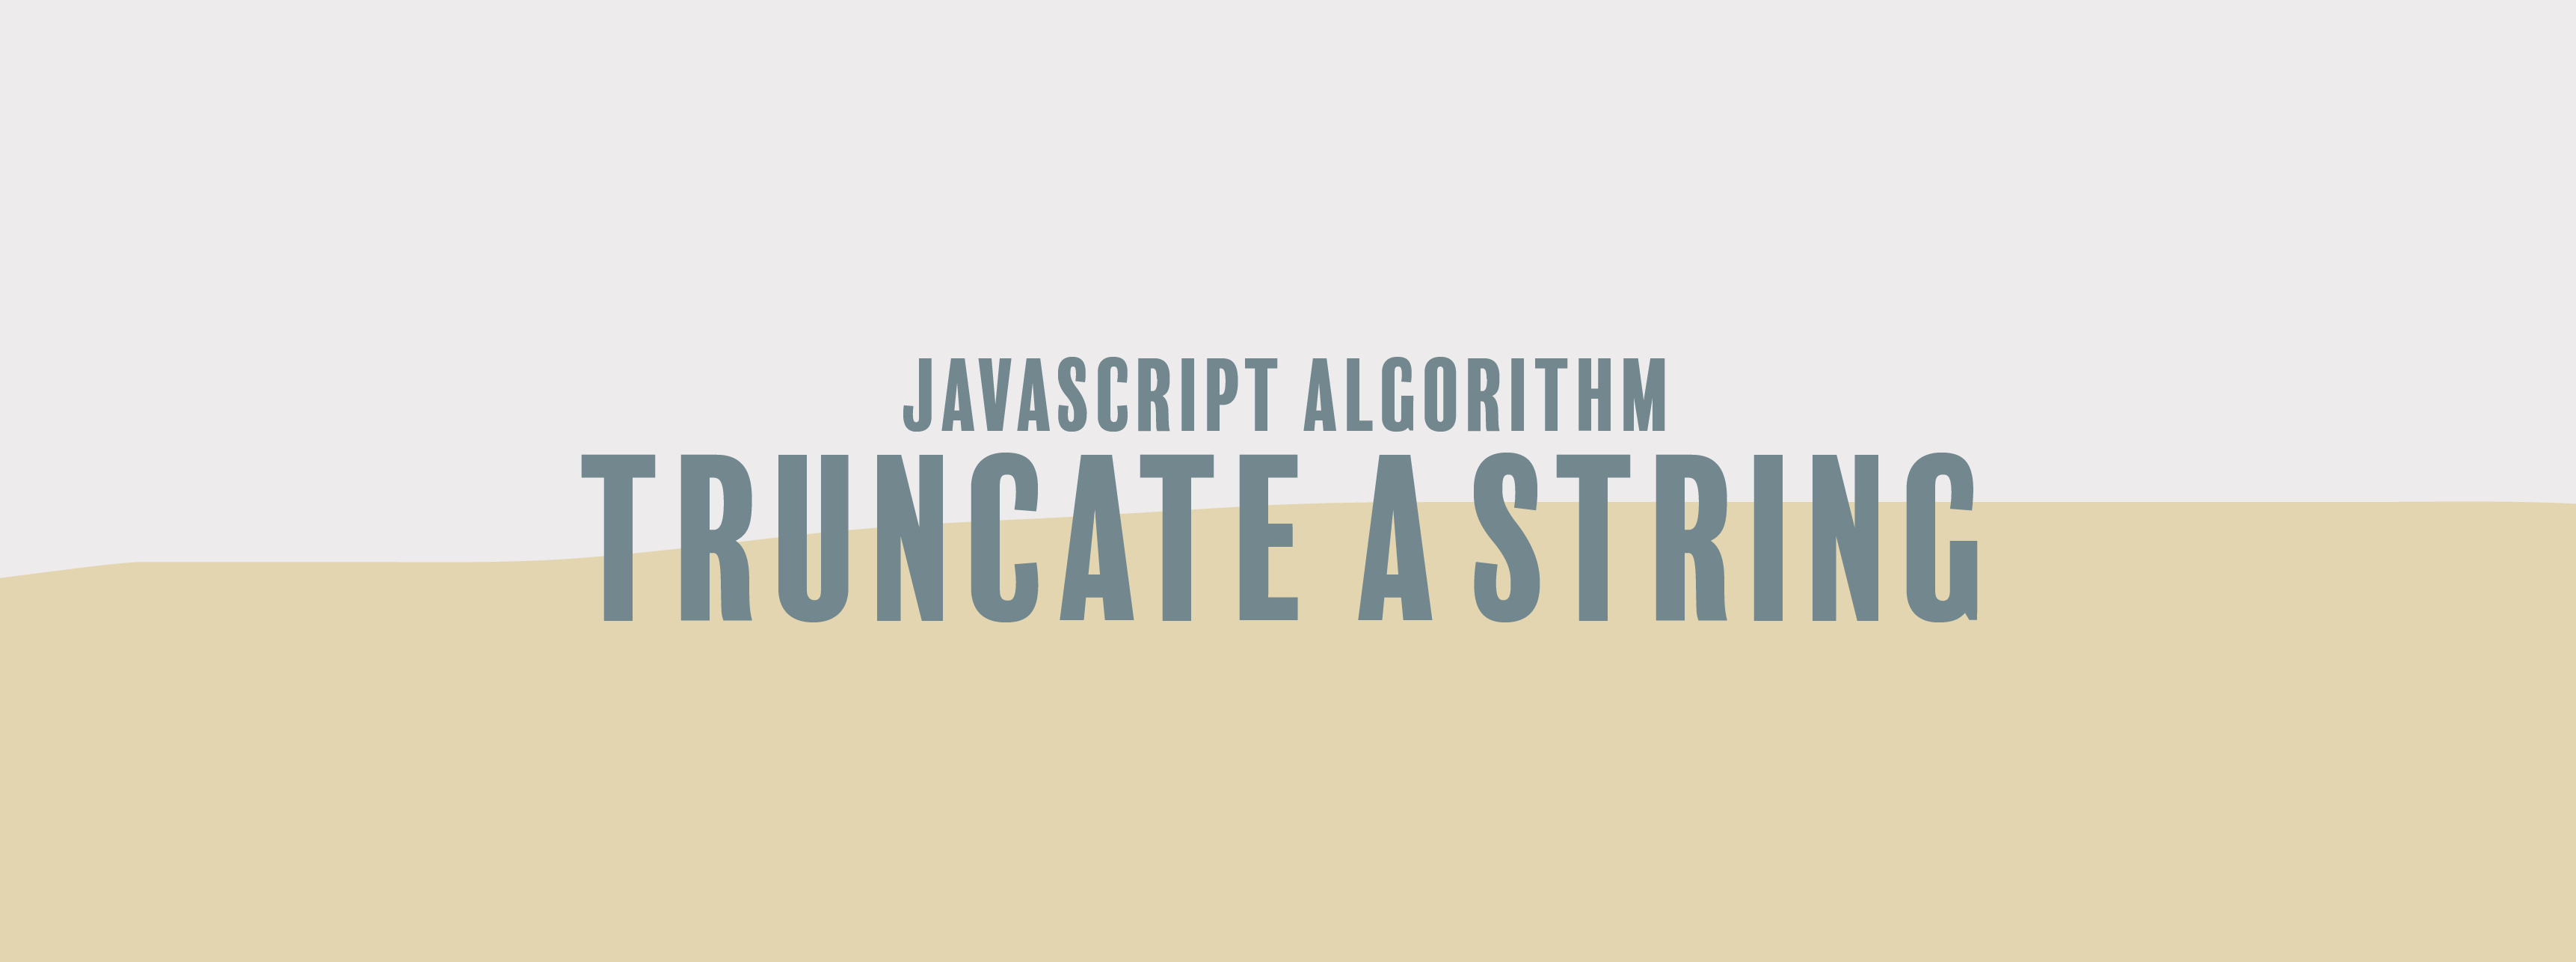 JavaScript Algorithm: Truncate a String | by Erica N | Level Up Coding